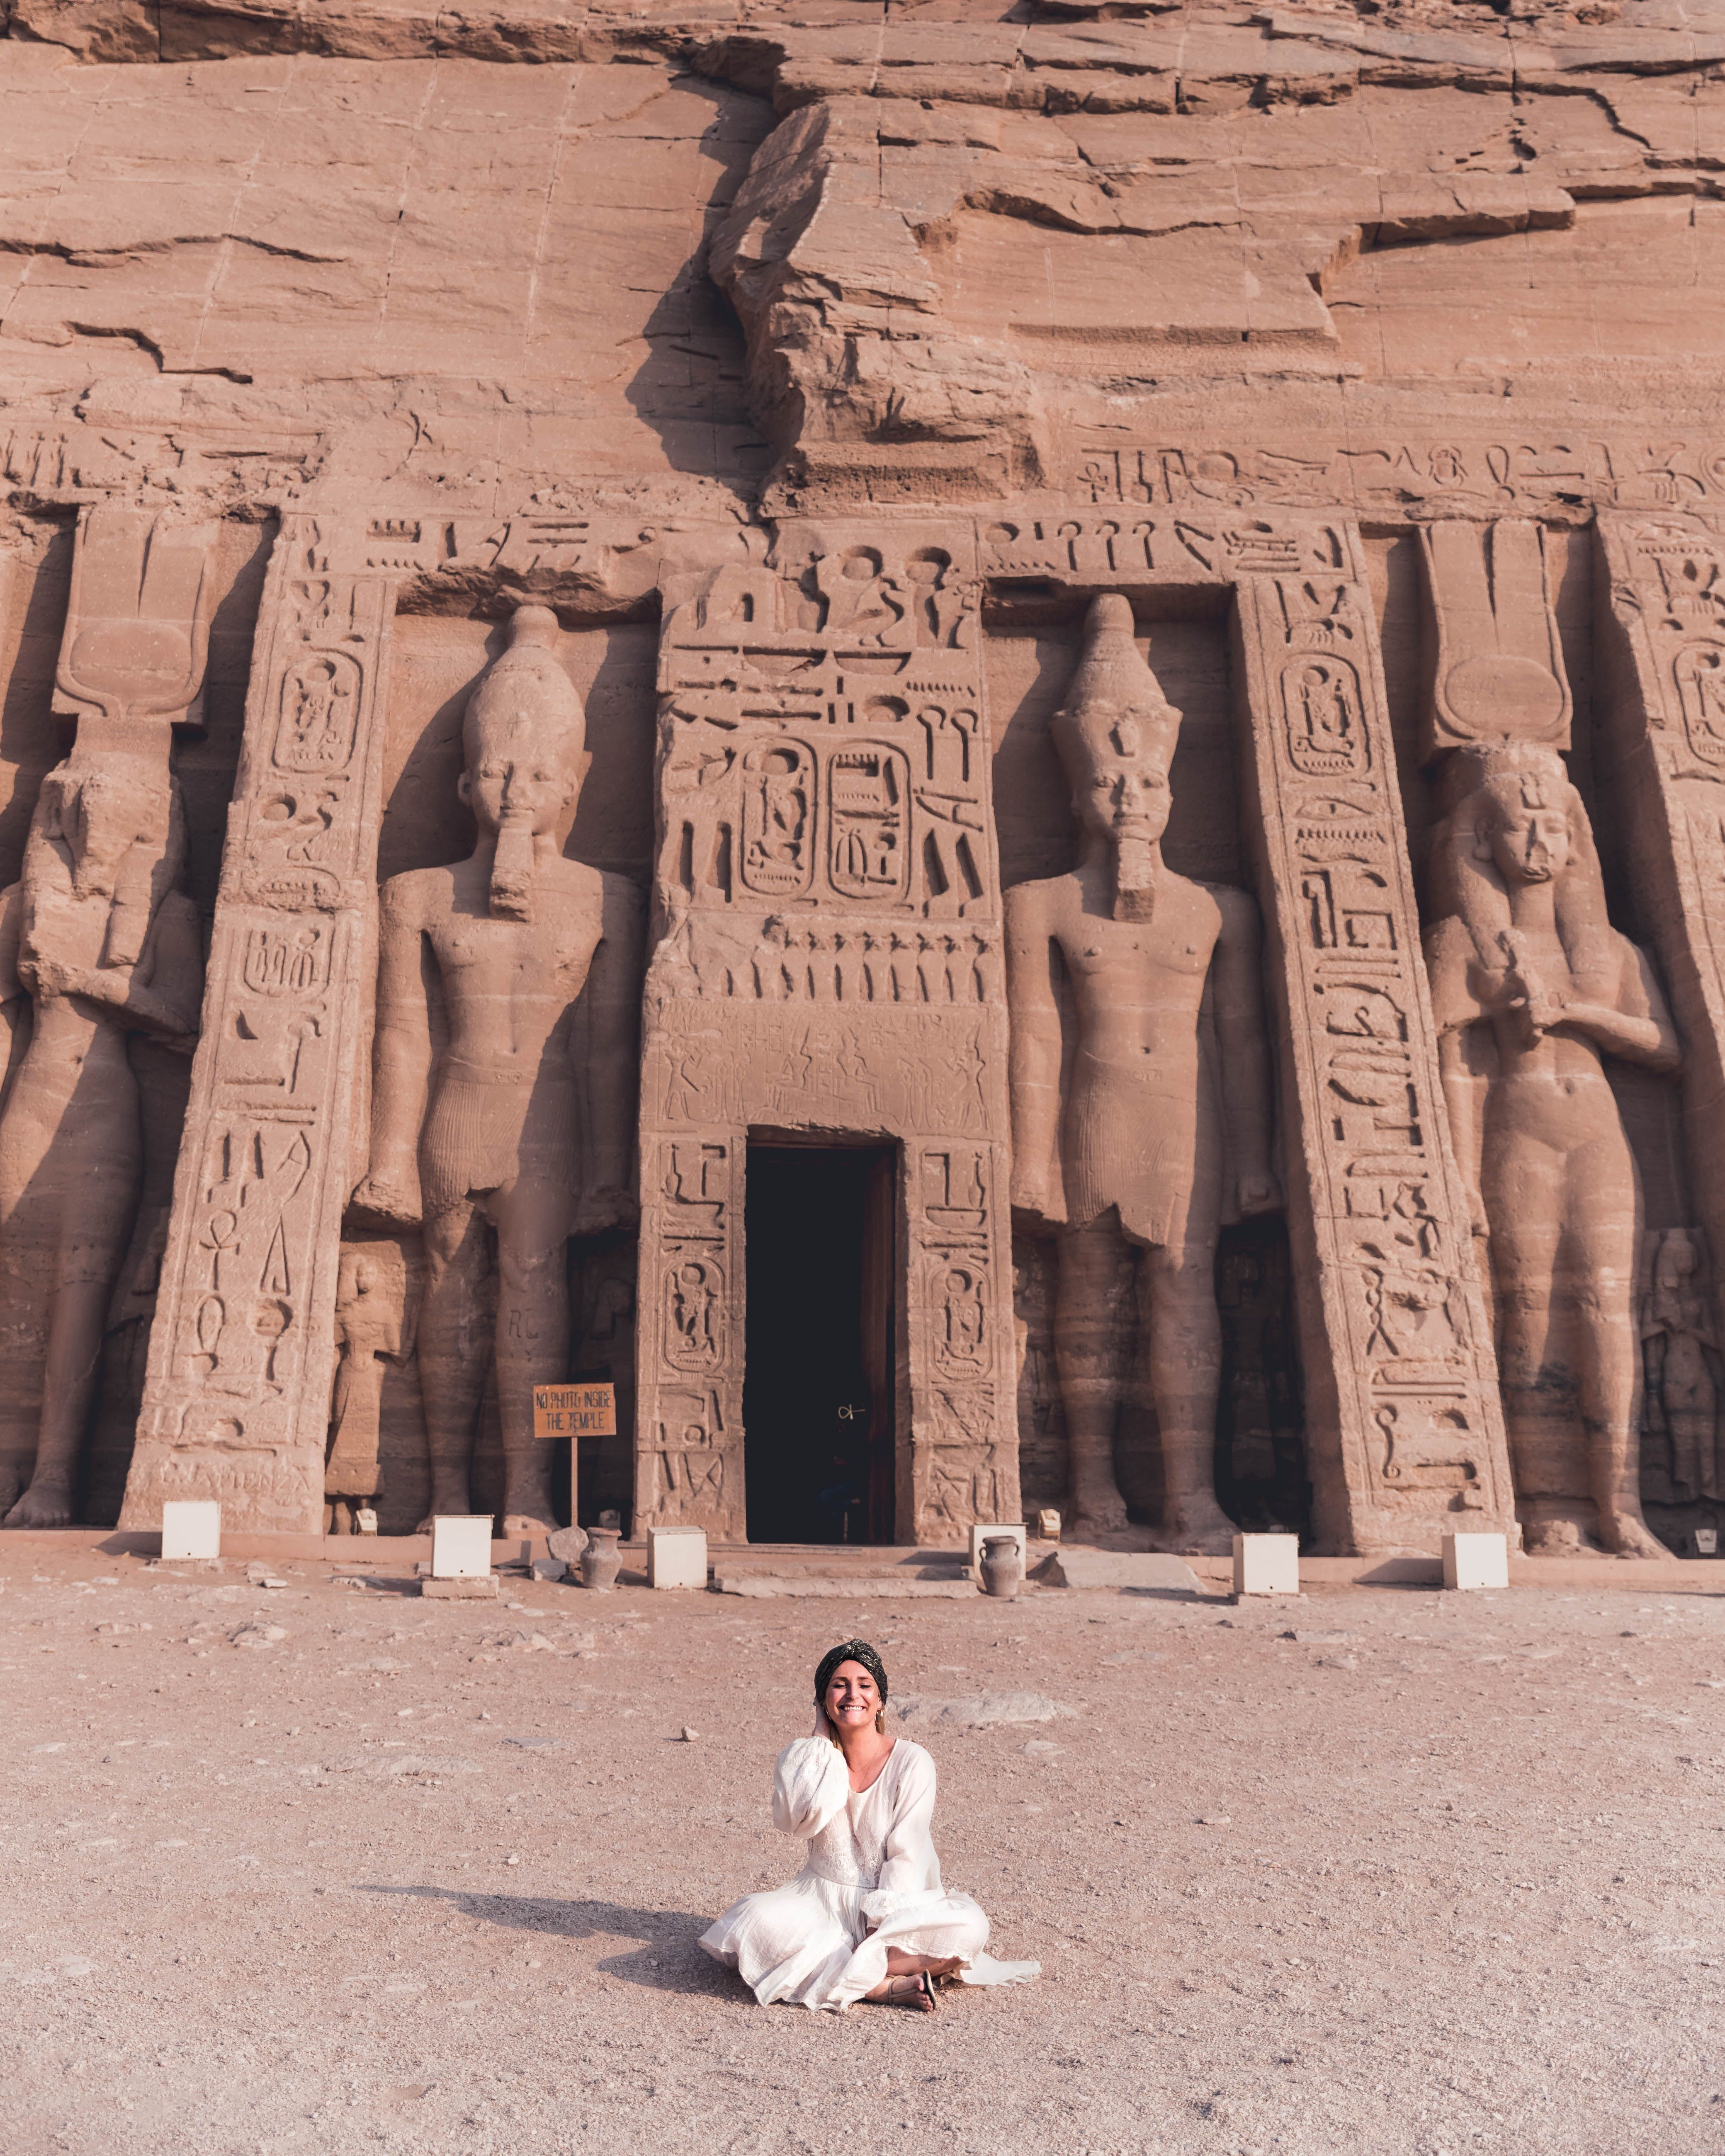 The Most Instagrammable places in Egypt - Charlies Wanderings -  The Most Instagrammable places in Egypt – Charlies Wanderings  - #BeautifulCelebrities #charlies #Egypt #Film #instagrammable #Museums #places #wanderings